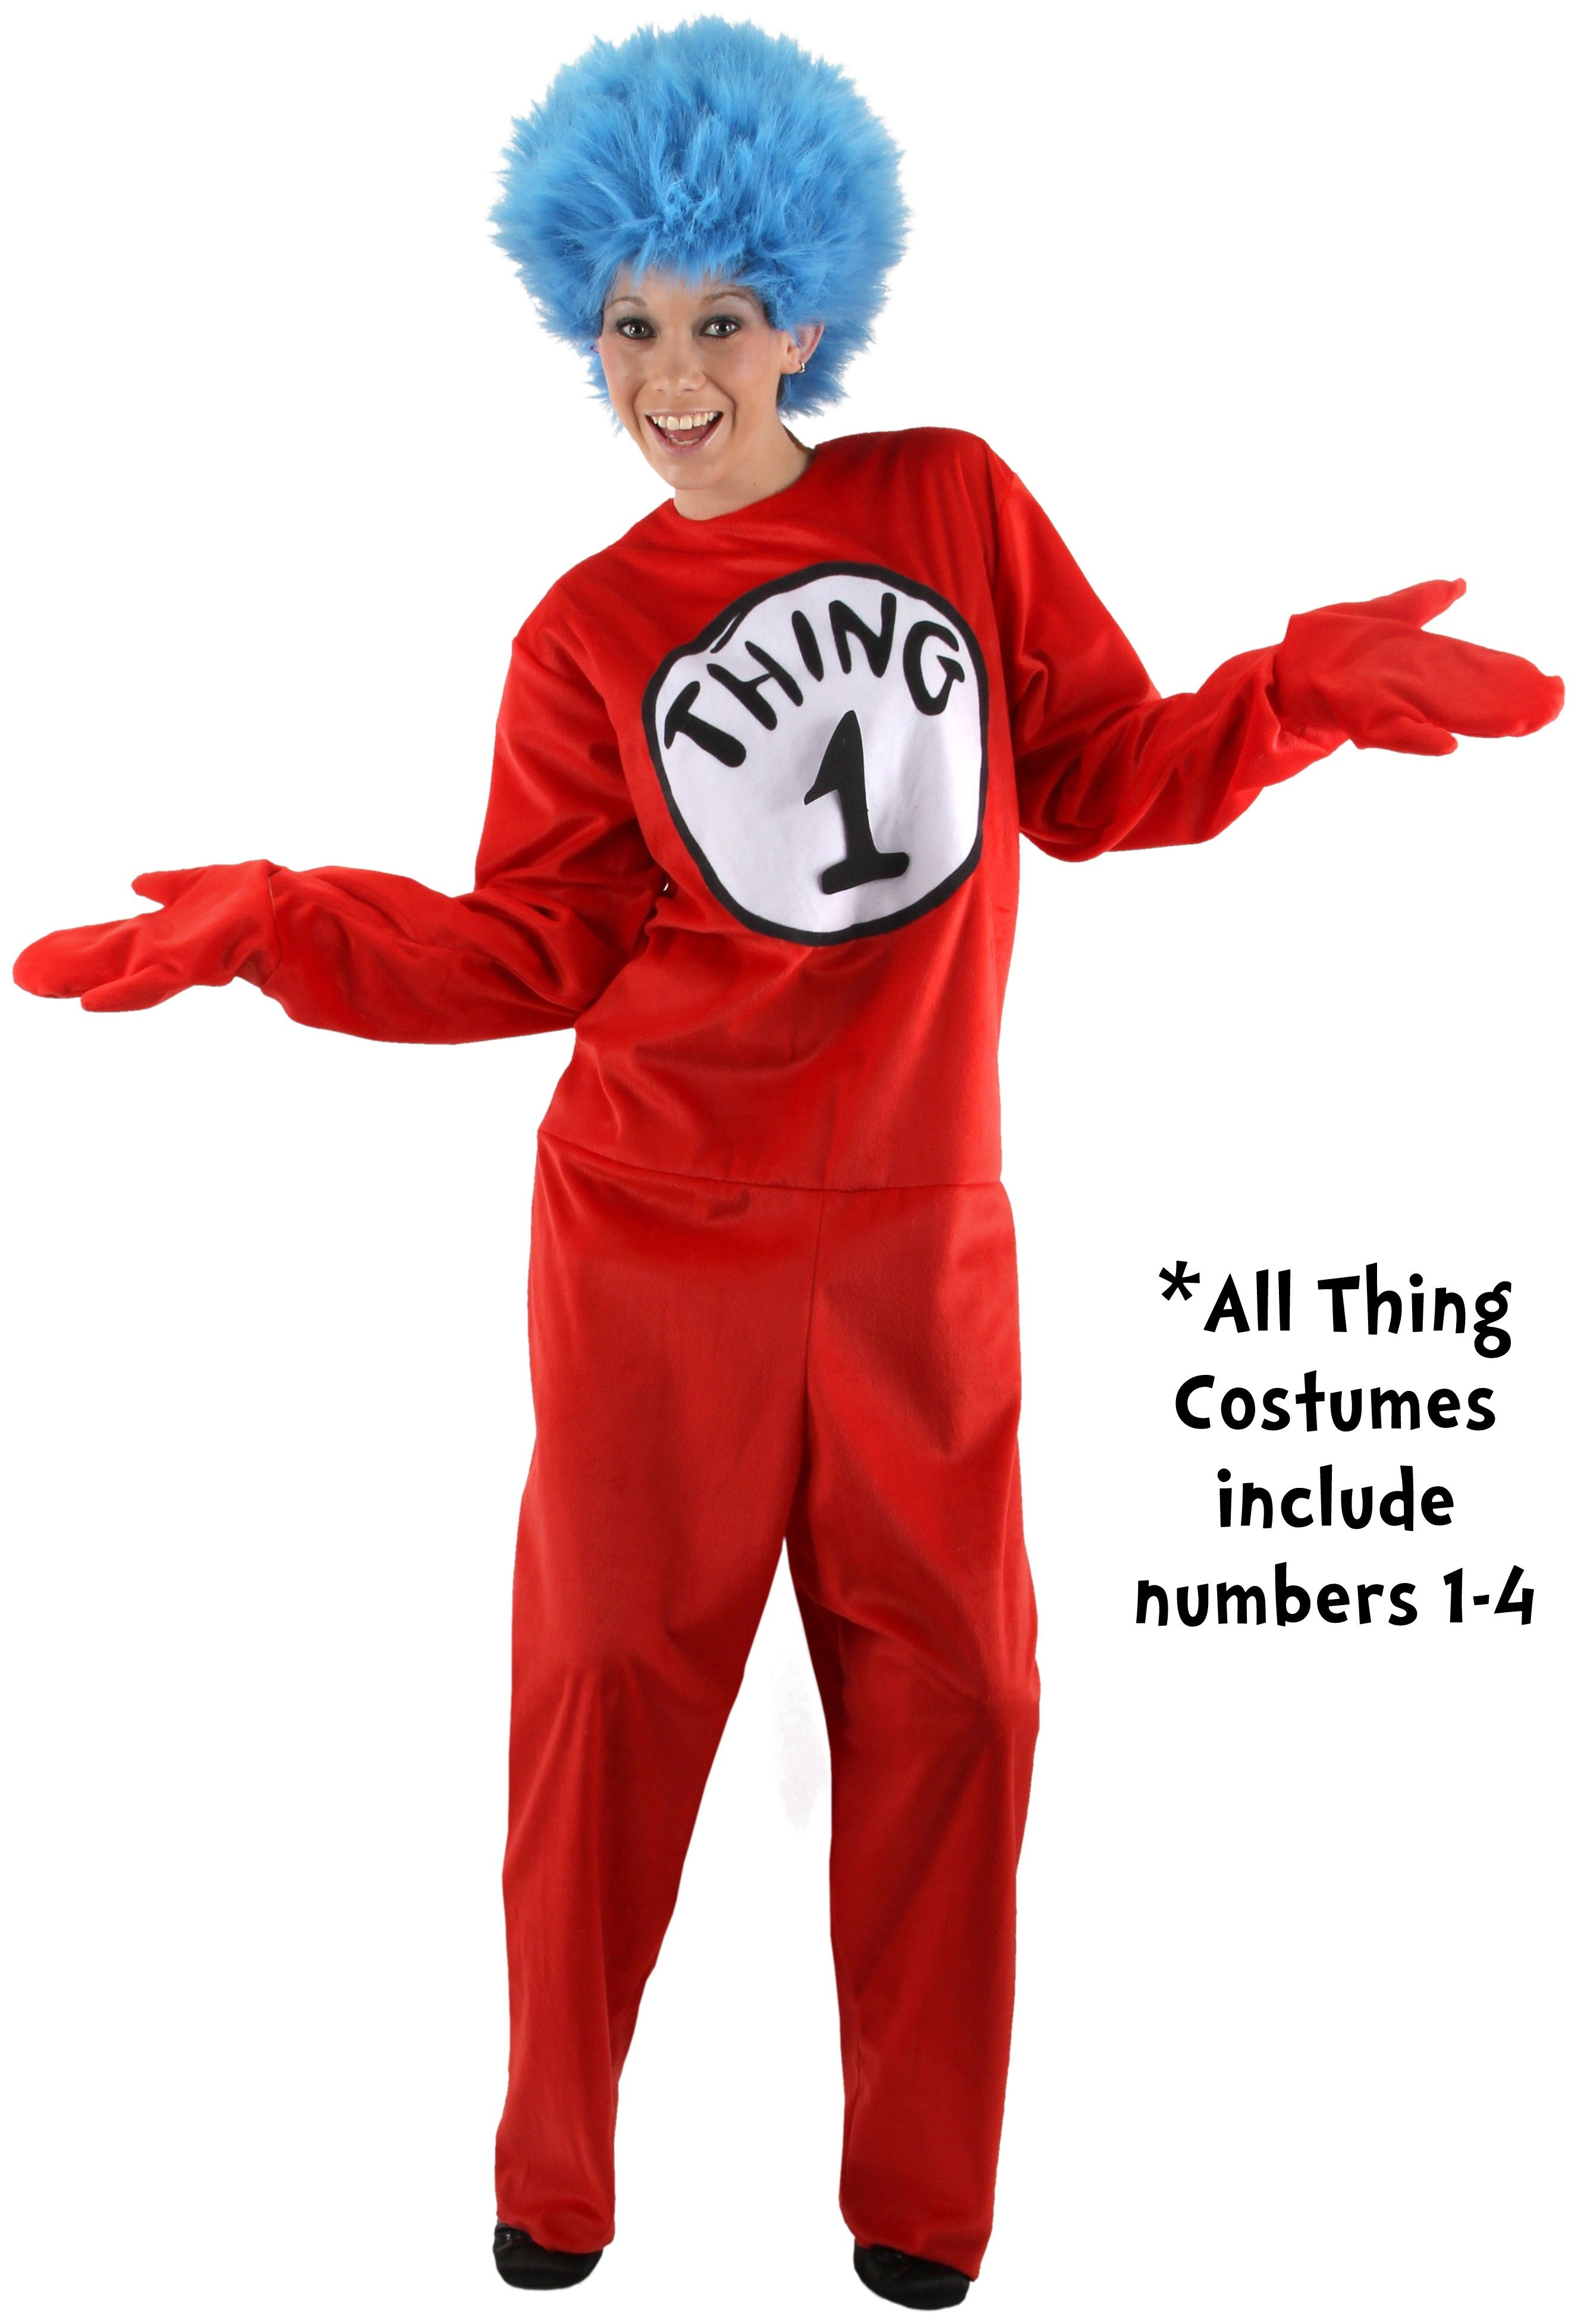 Dr. Seuss The Cat in the Hat - Thing 1 or Thing 2 Adult Costume  sc 1 st  Pinterest & Dr. Seuss The Cat in the Hat - Thing 1 or Thing 2 Adult Costume ...